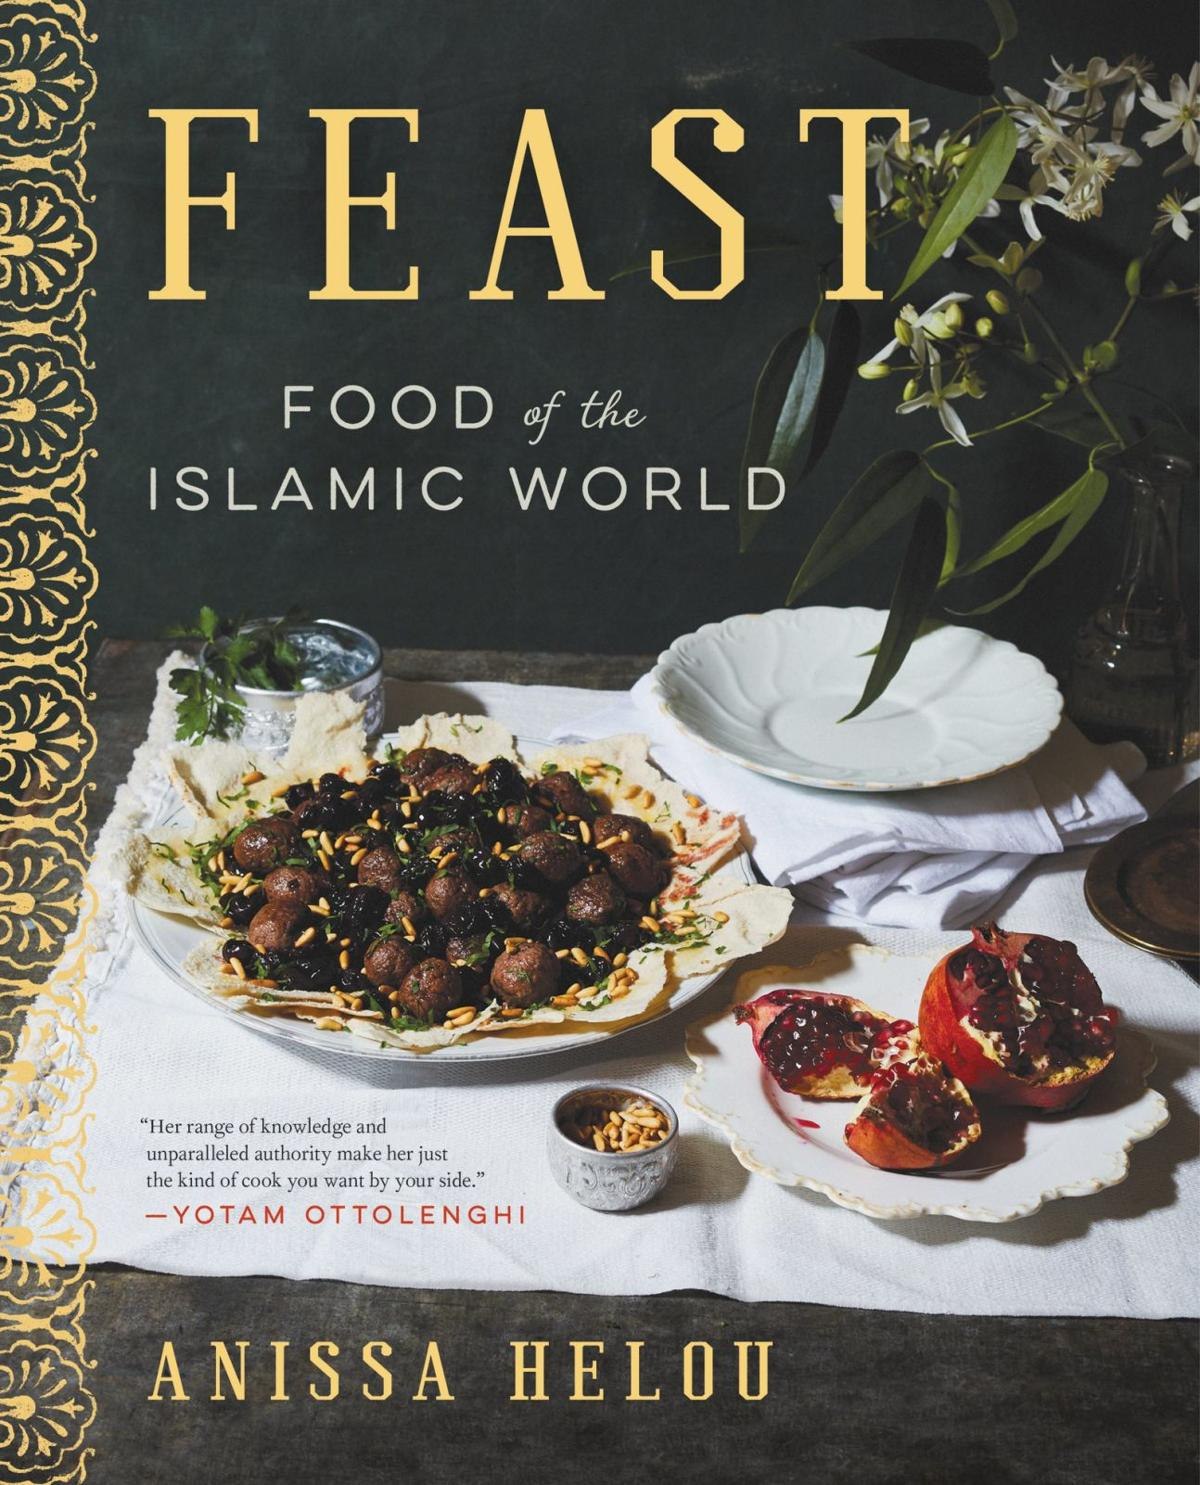 Food Book Cover Yelp : Spice baby quot feast food of the islamic world